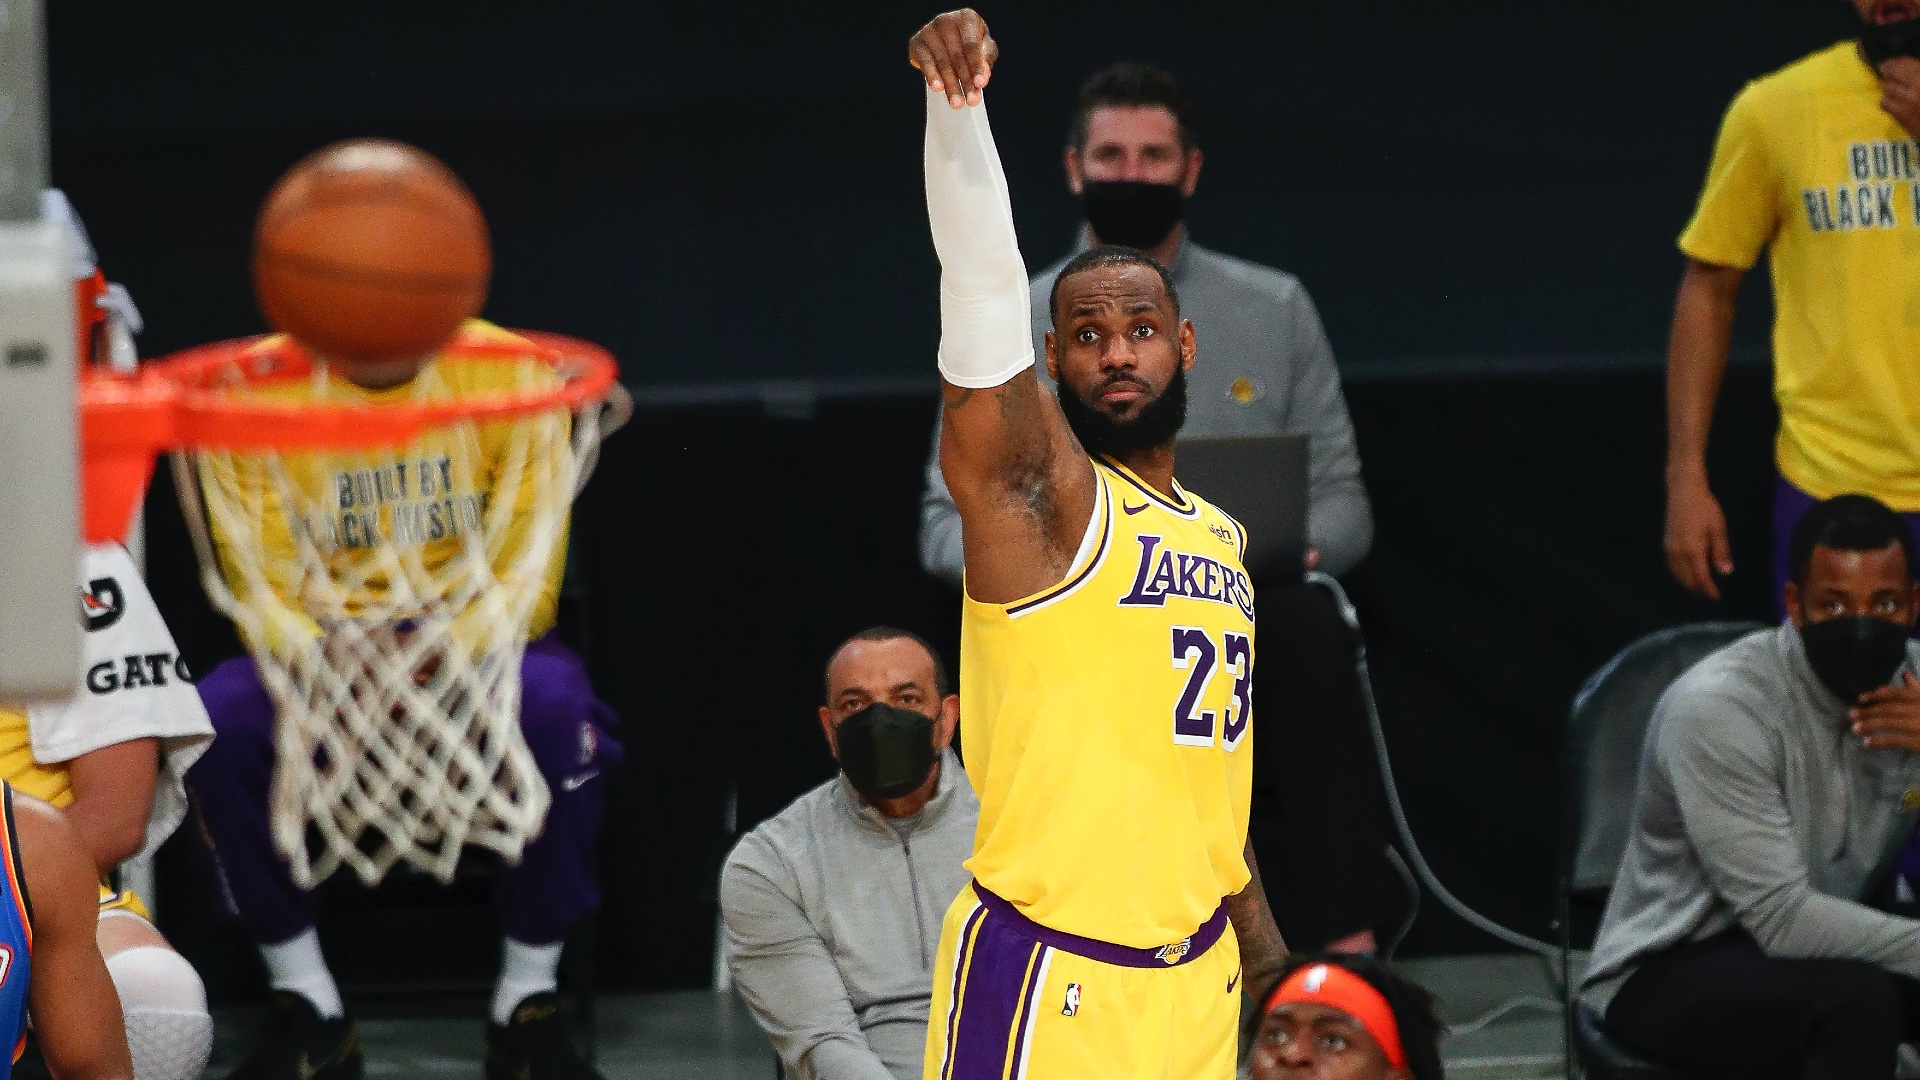 LeBron in triple-double display as Lakers win in OT, LaMelo Ball joins special company